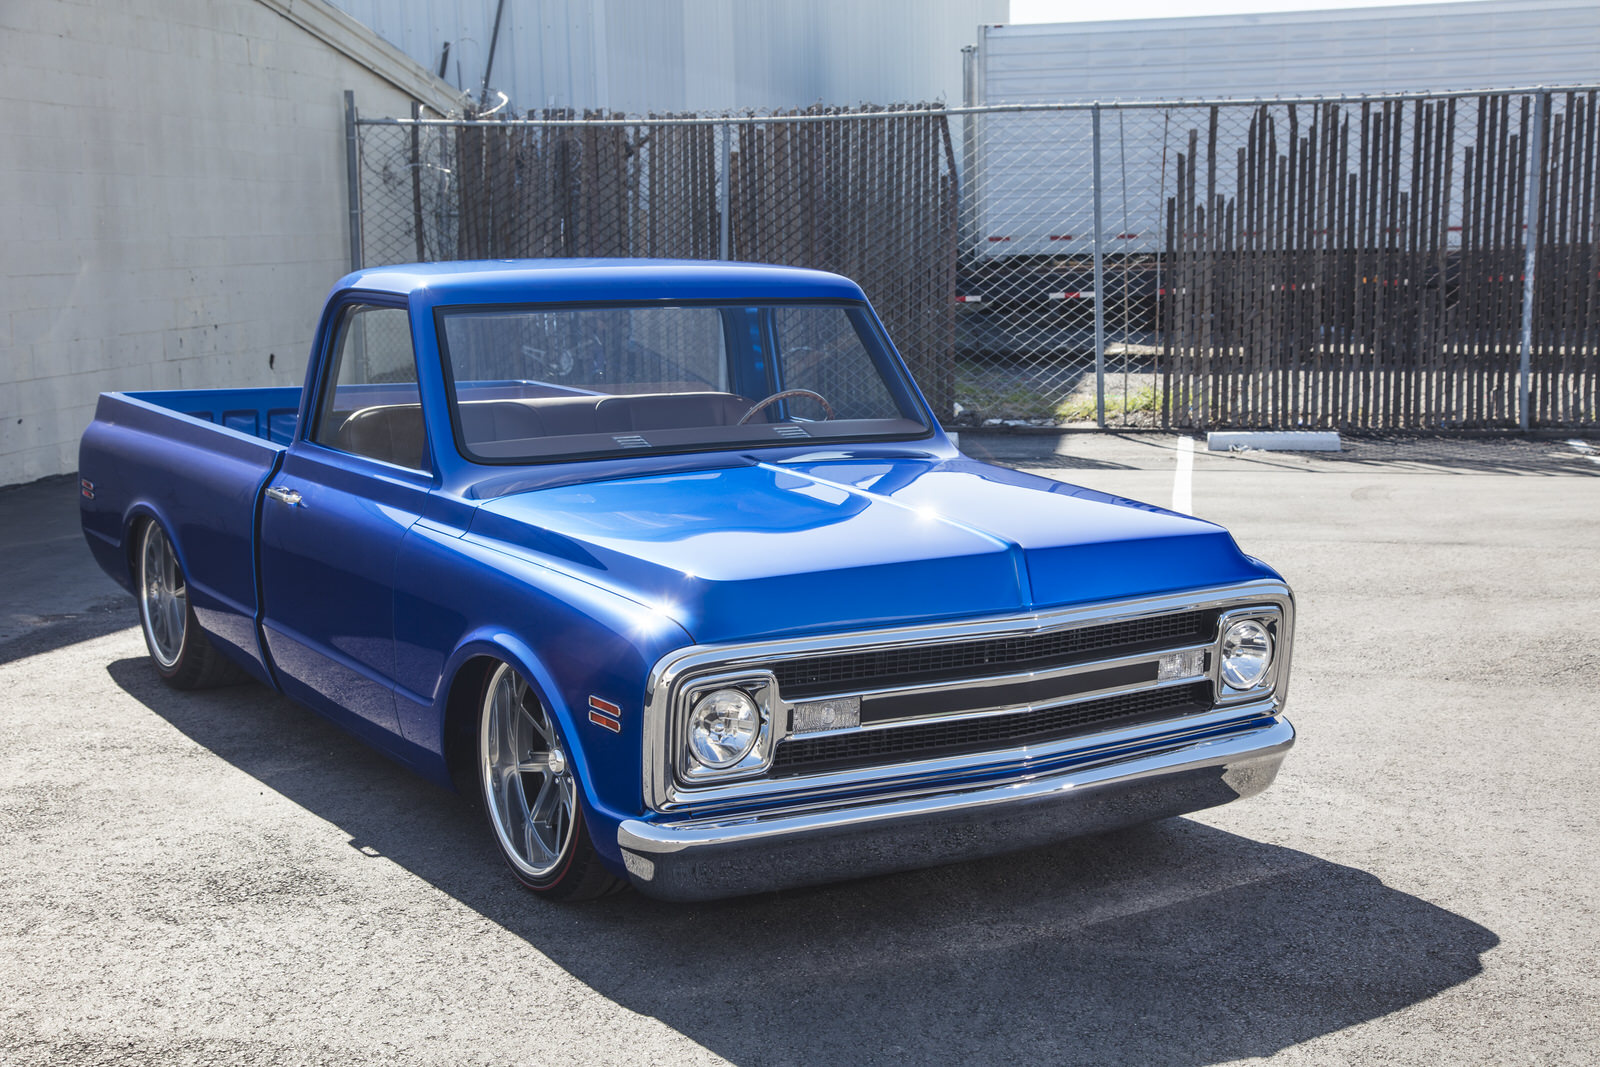 Sean Provost 1970 Chevy C10 Pickup - South City Rod & Custom - Photo by Tim Sutton